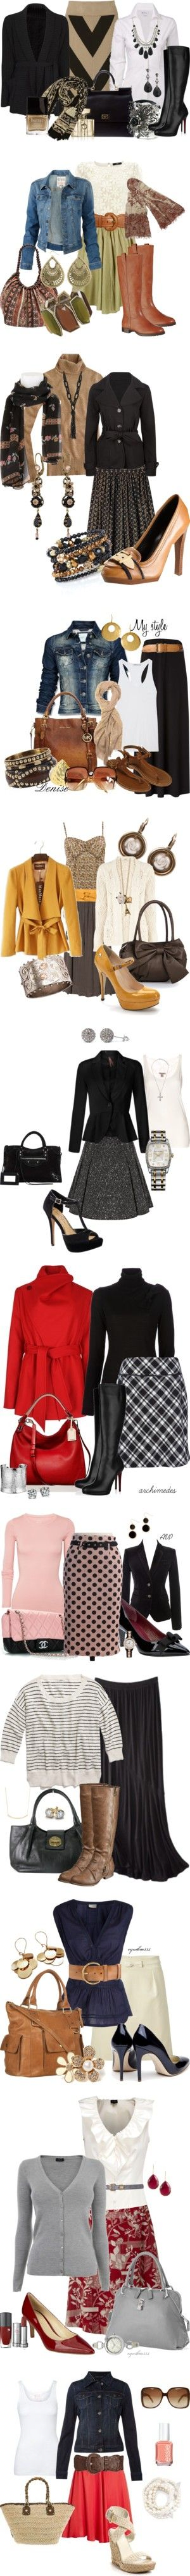 """Don't Skirt the Issue"" by stylesbyjoey on Polyvore, some of them are really cute :)"